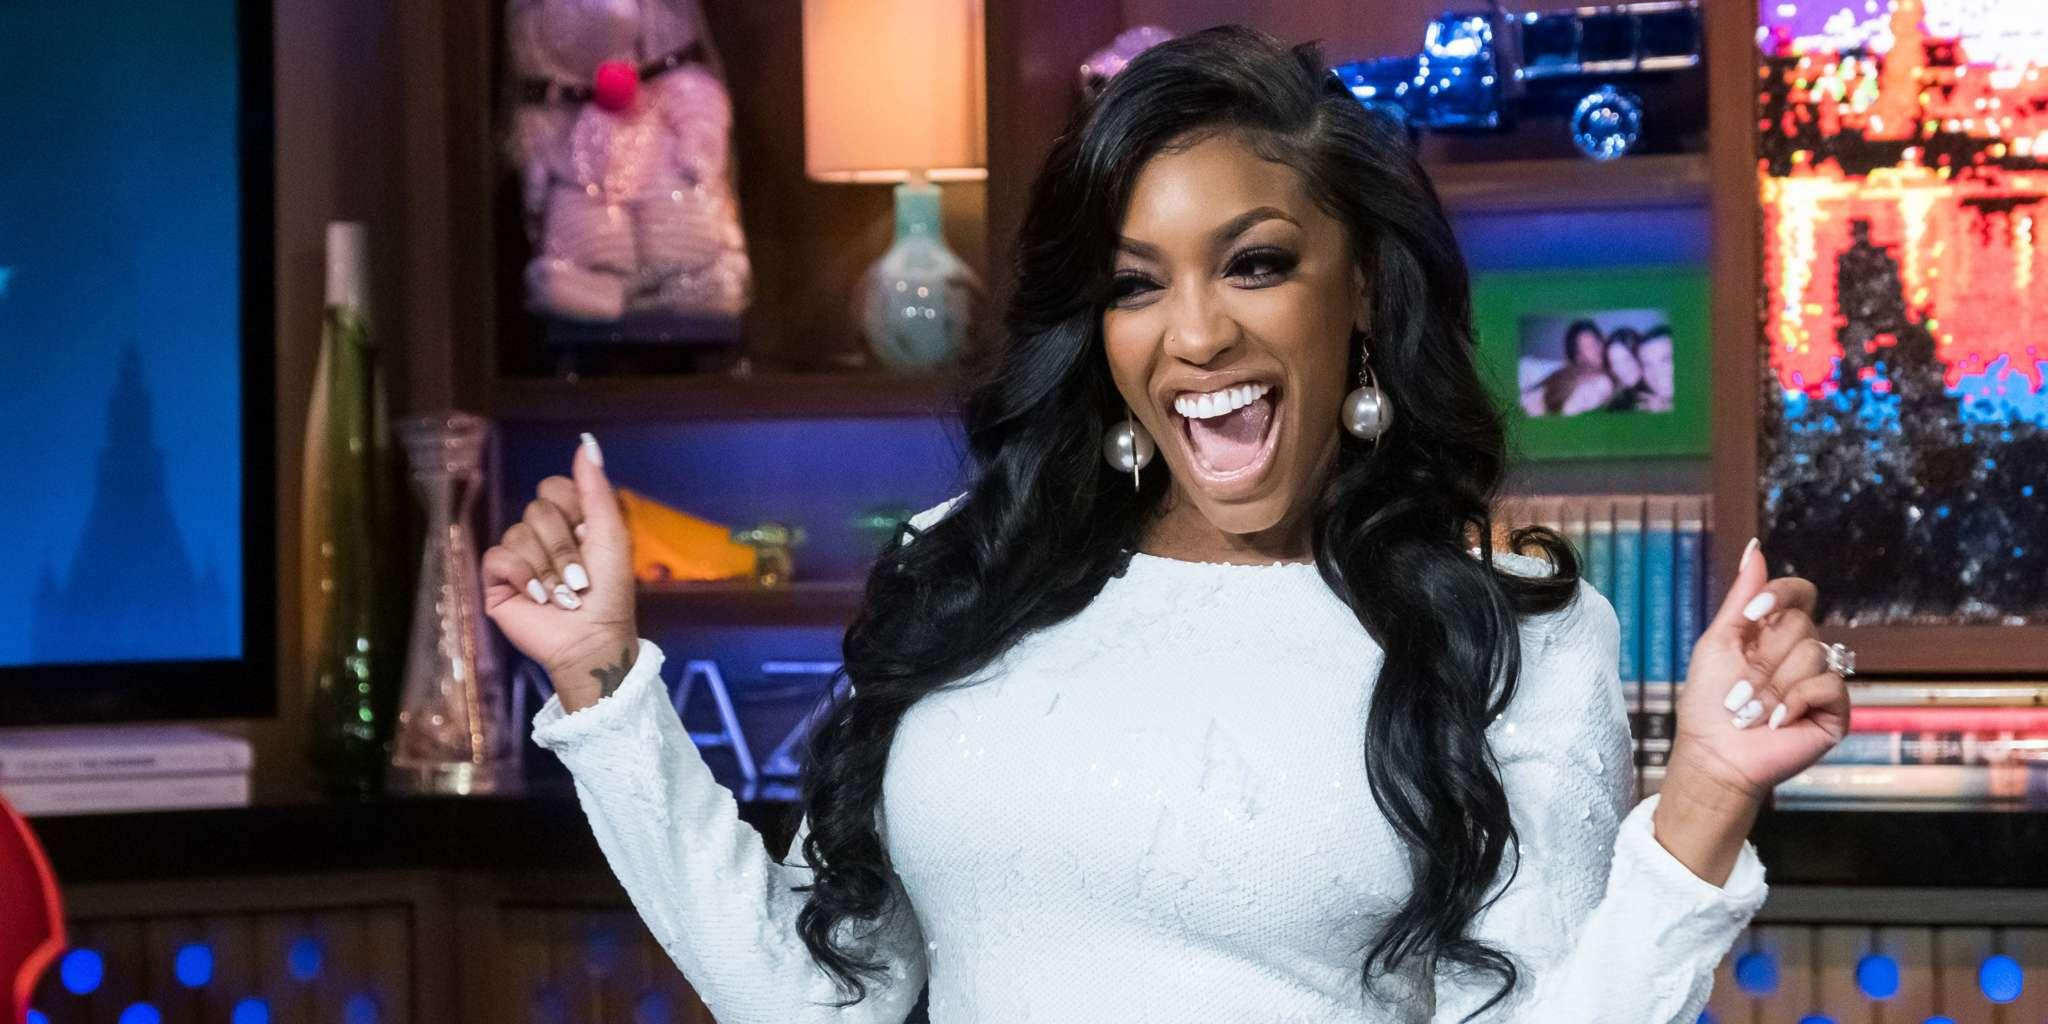 Porsha Williams Shows Off Her Natural Hair And Fans Ask If She's Using Kenya Moore's Hair Products